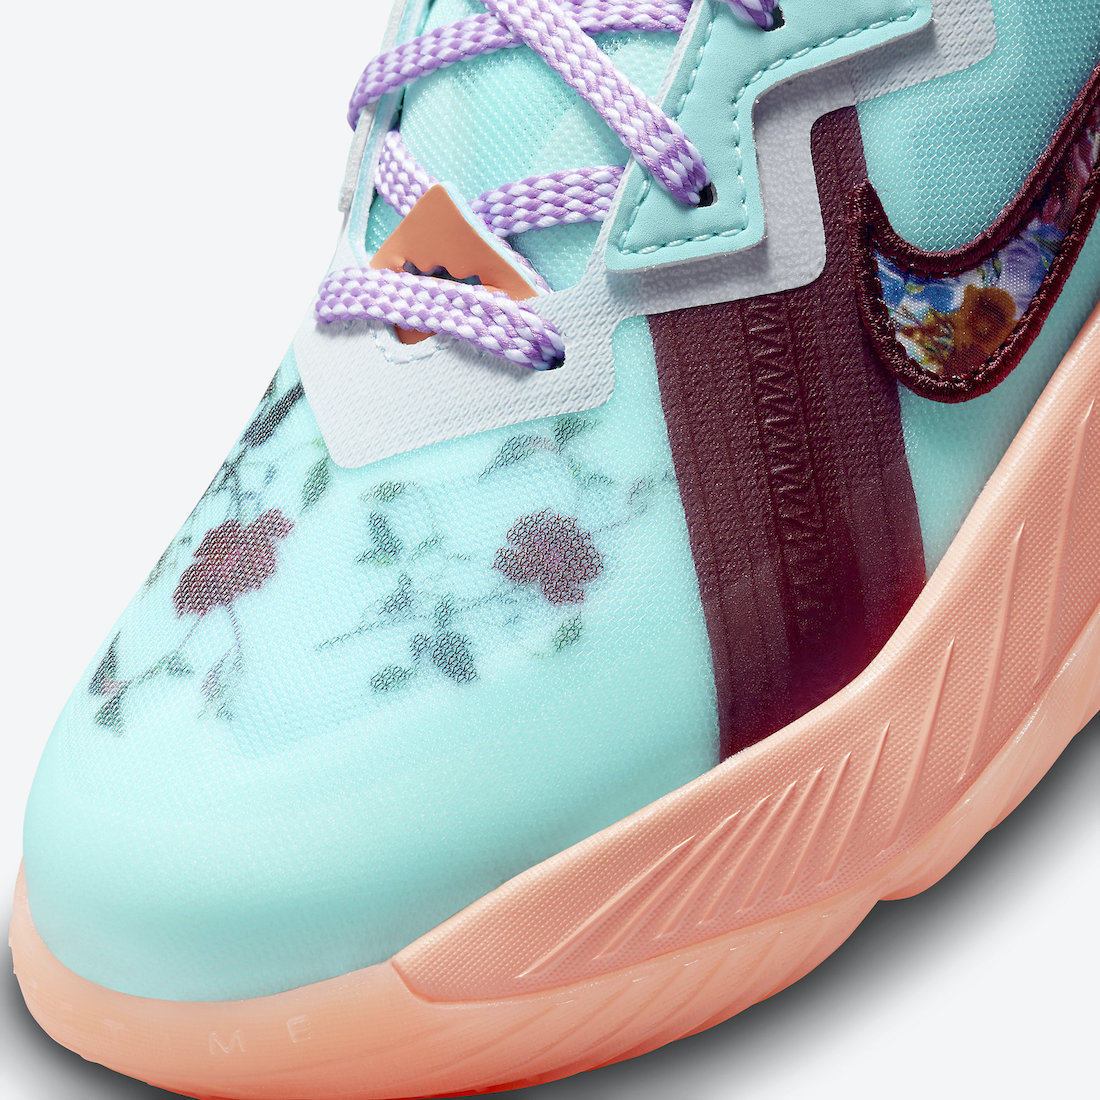 nike lebron 18 low gs floral dn4177 400 release date info 6